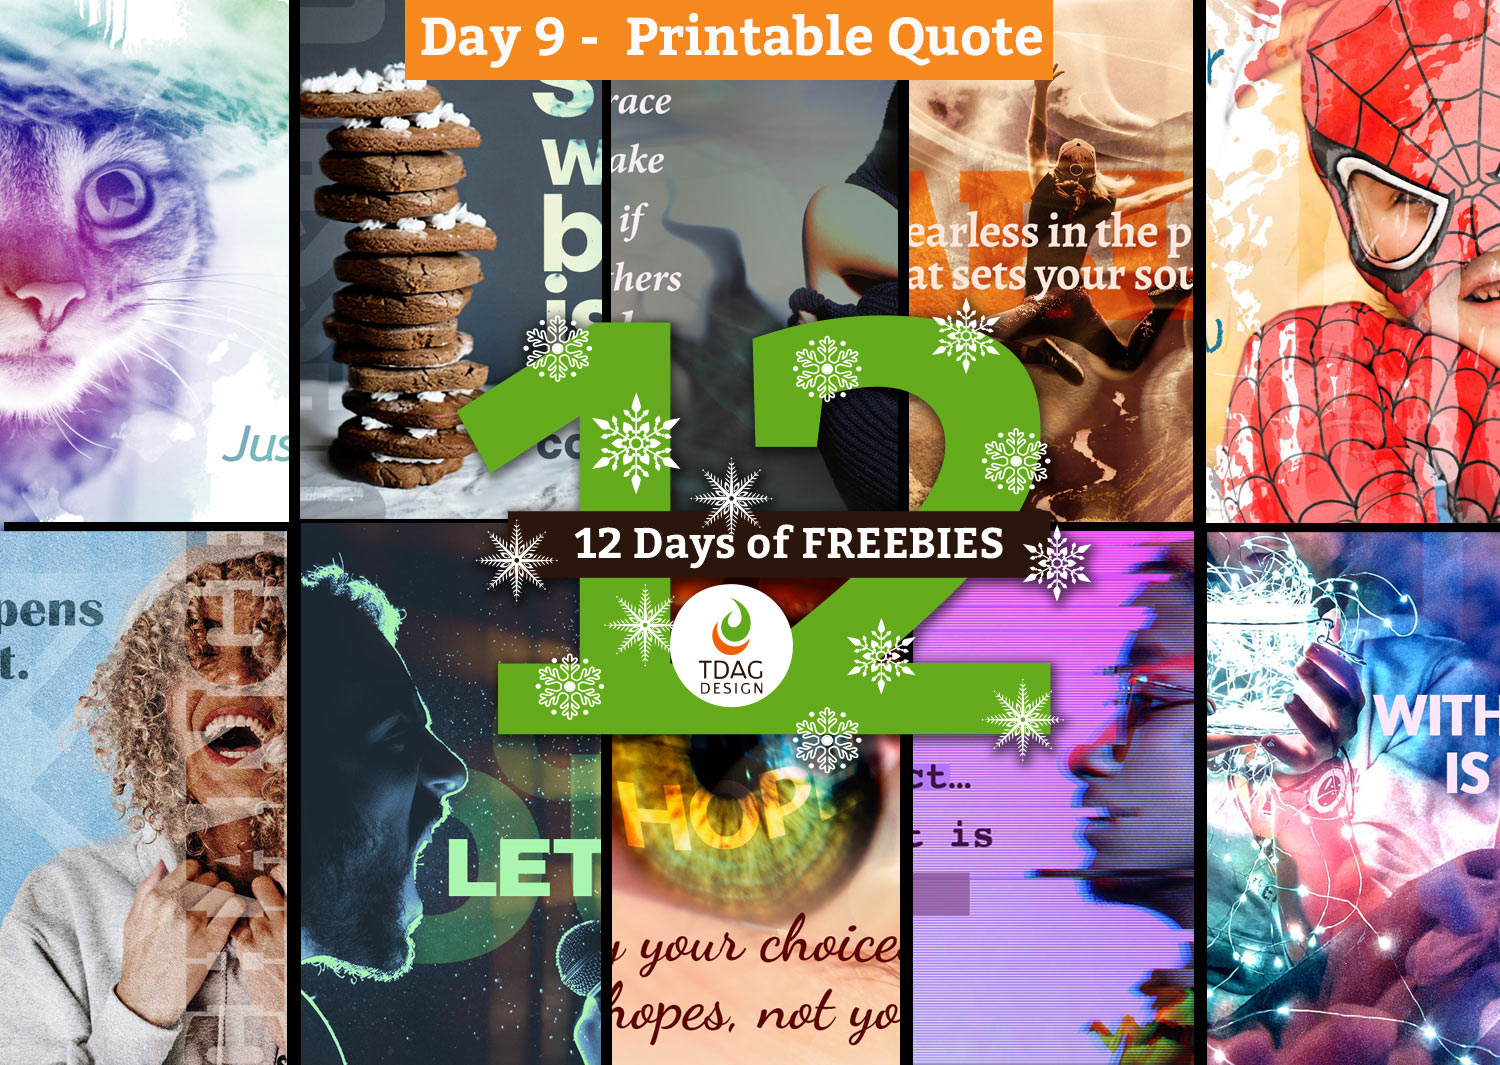 day 9 cover for freebie #9